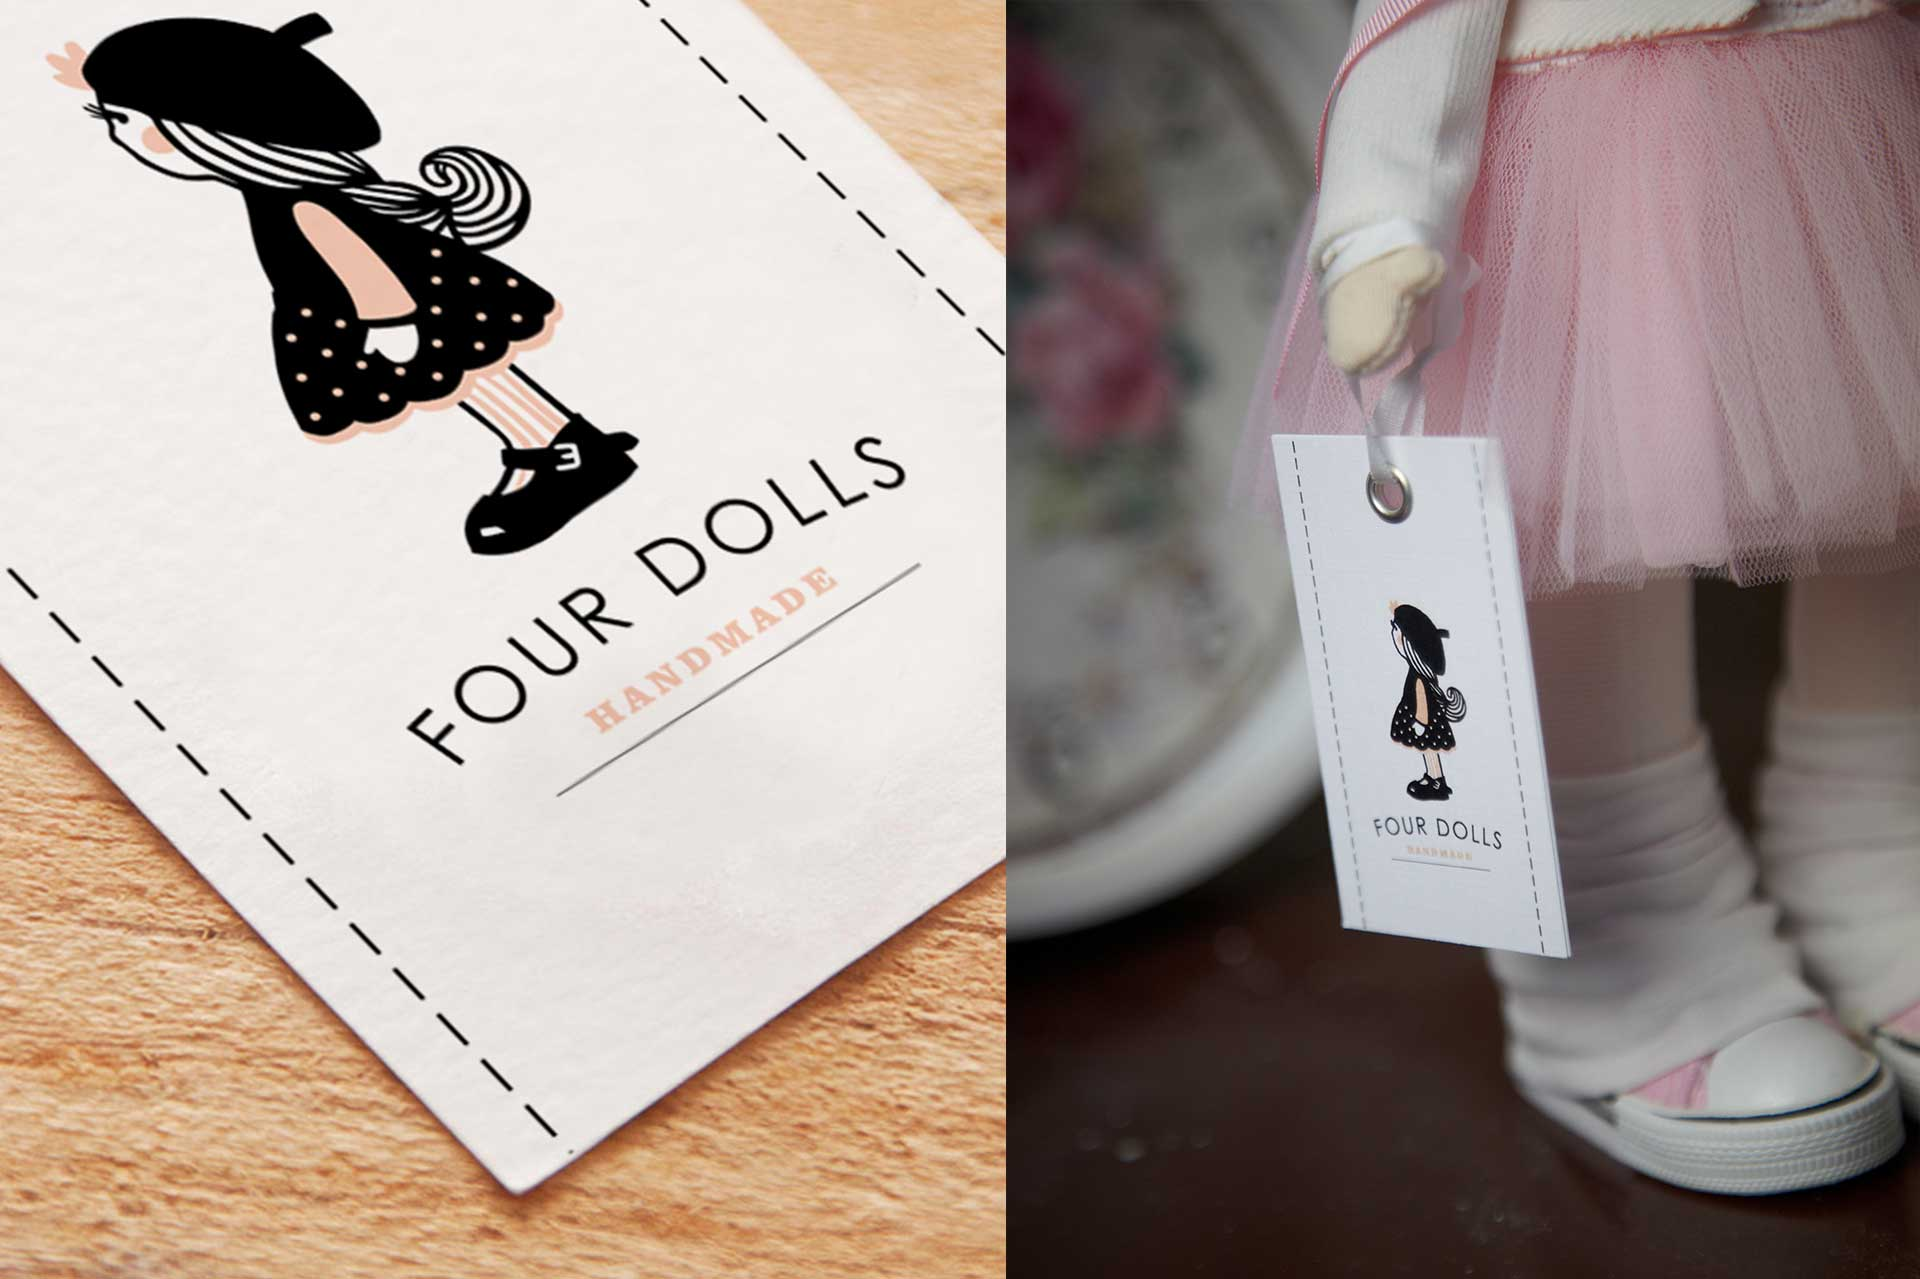 Identity Hand Made brand, Four Dolls